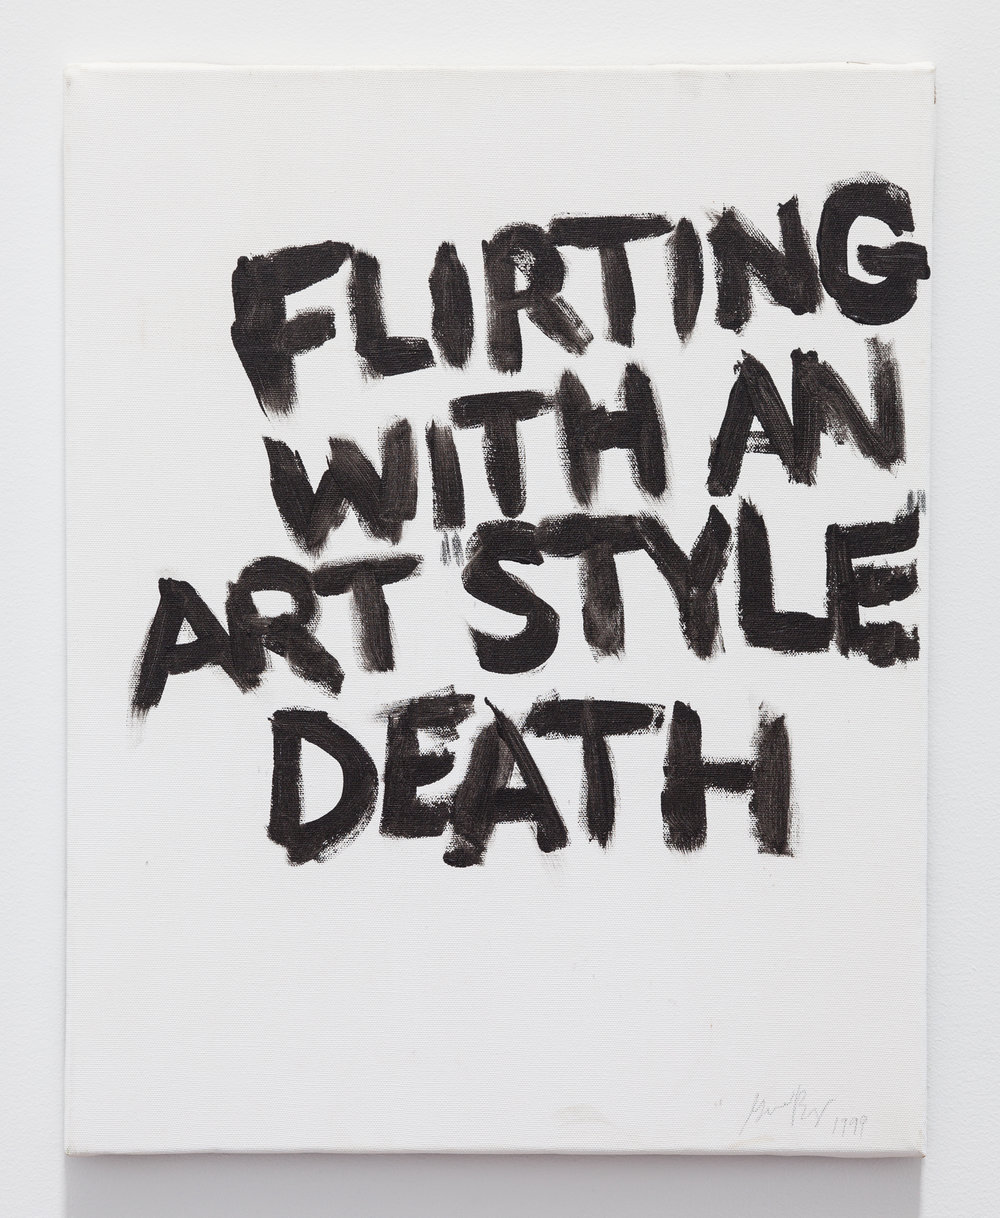 Gene Beery,  Flirting , 2009, acrylic on canvas, 20 x 16 in